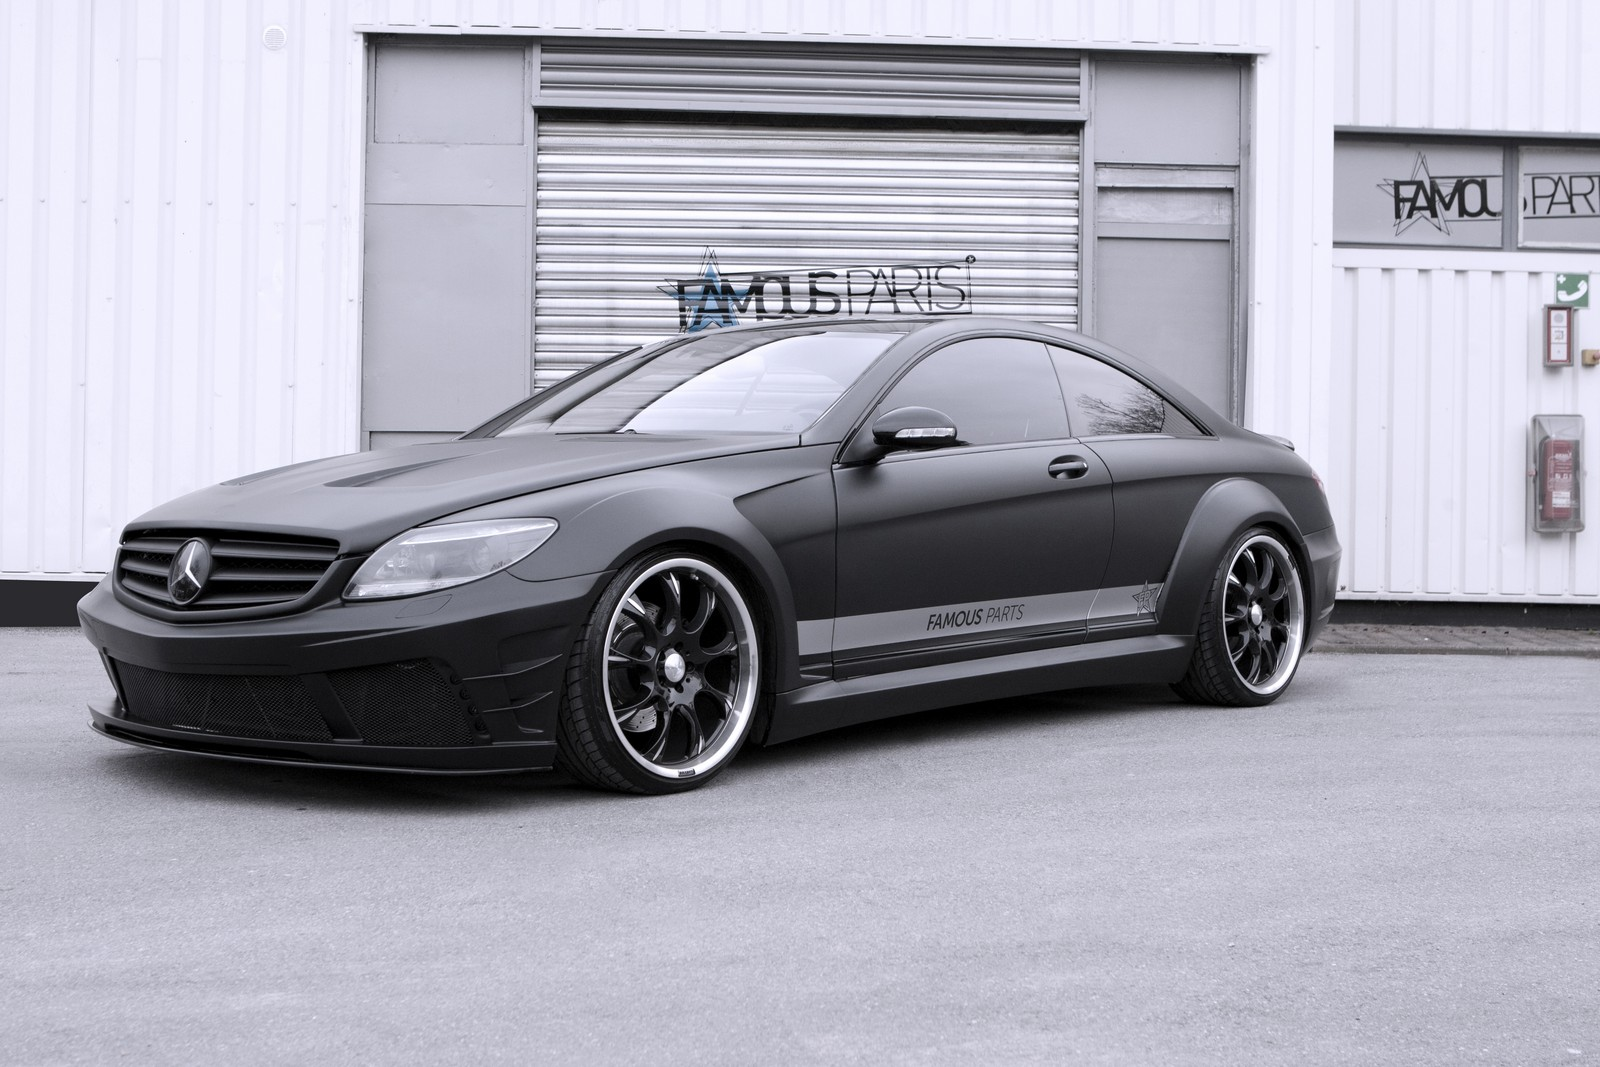 Moonshine matte black mercedes benz cl 500 by famous parts for Matte black mercedes benz